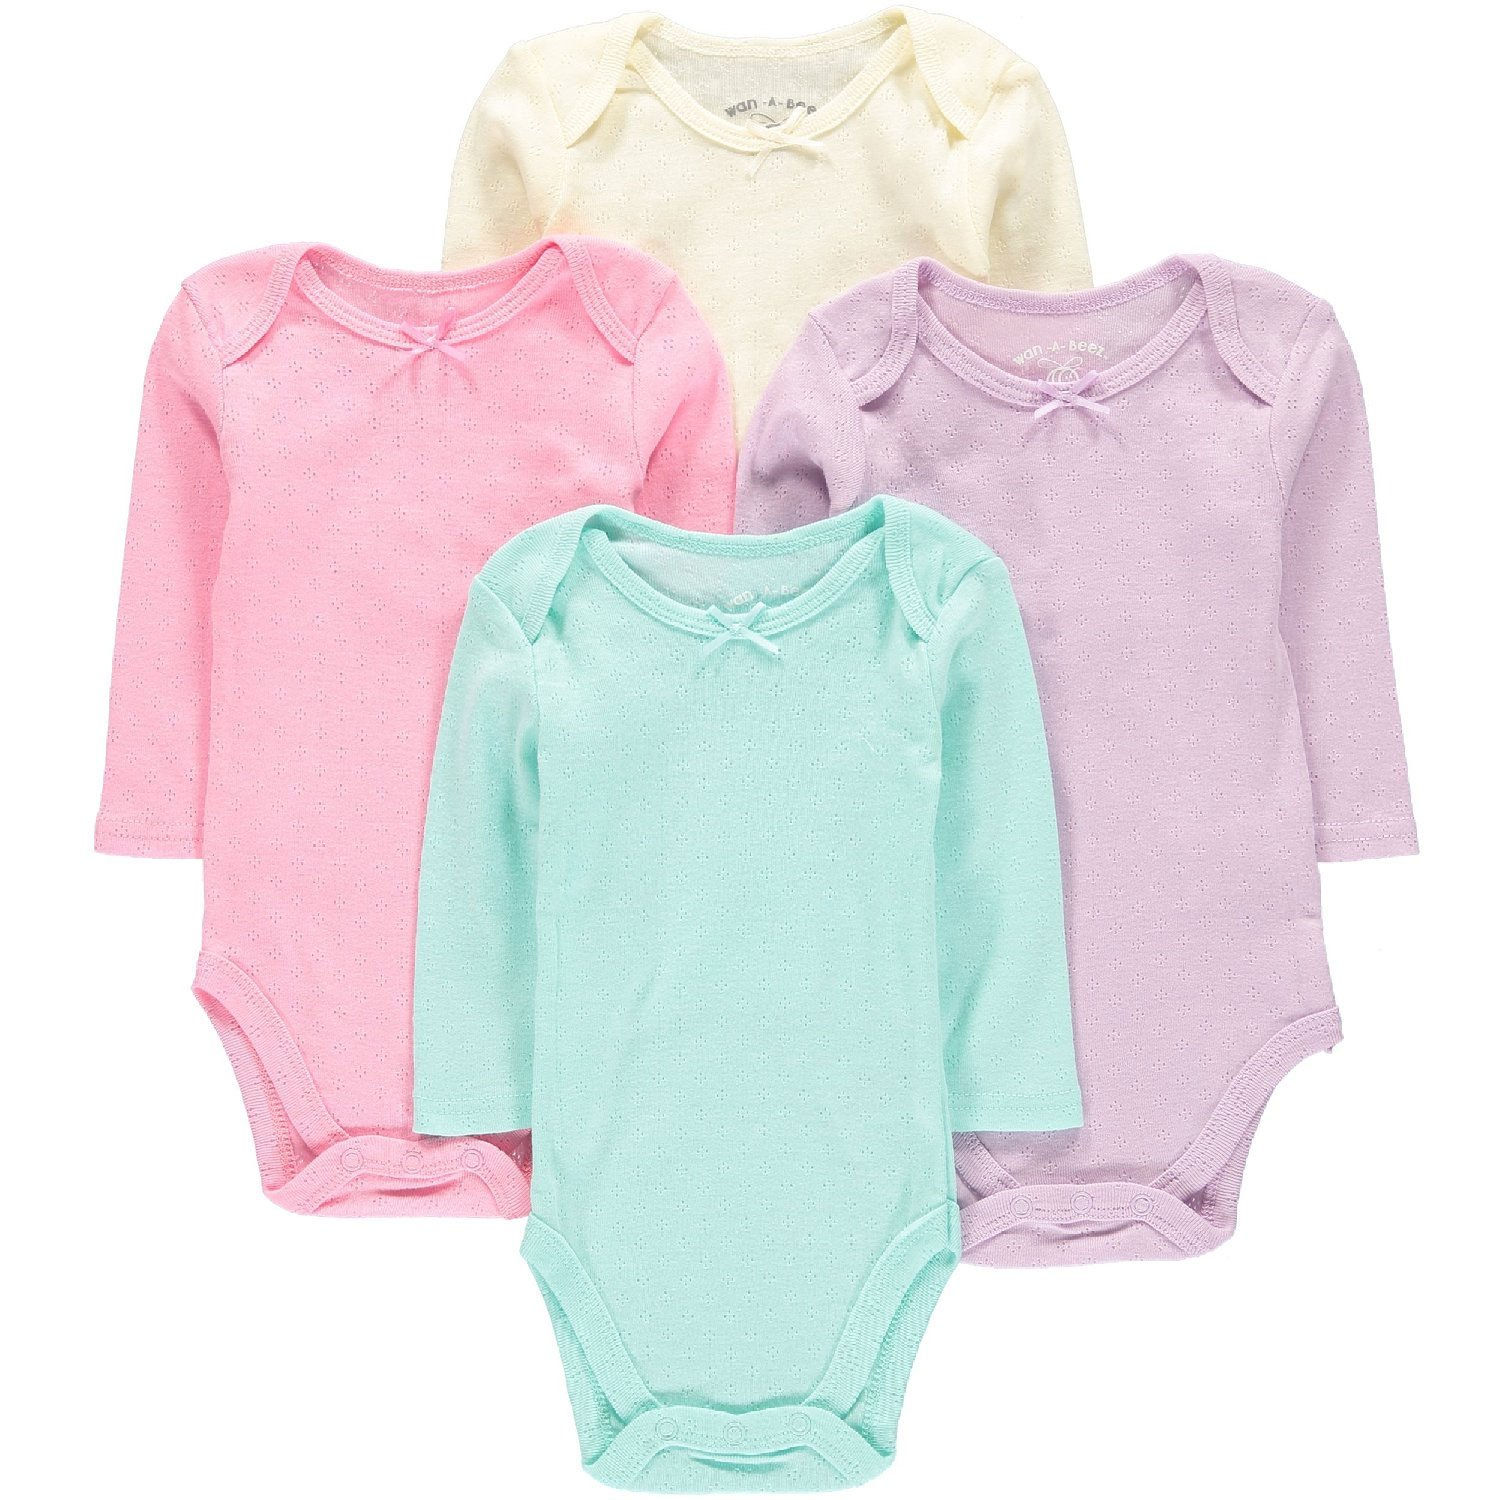 Solid Colored Onesies: Amazon.com